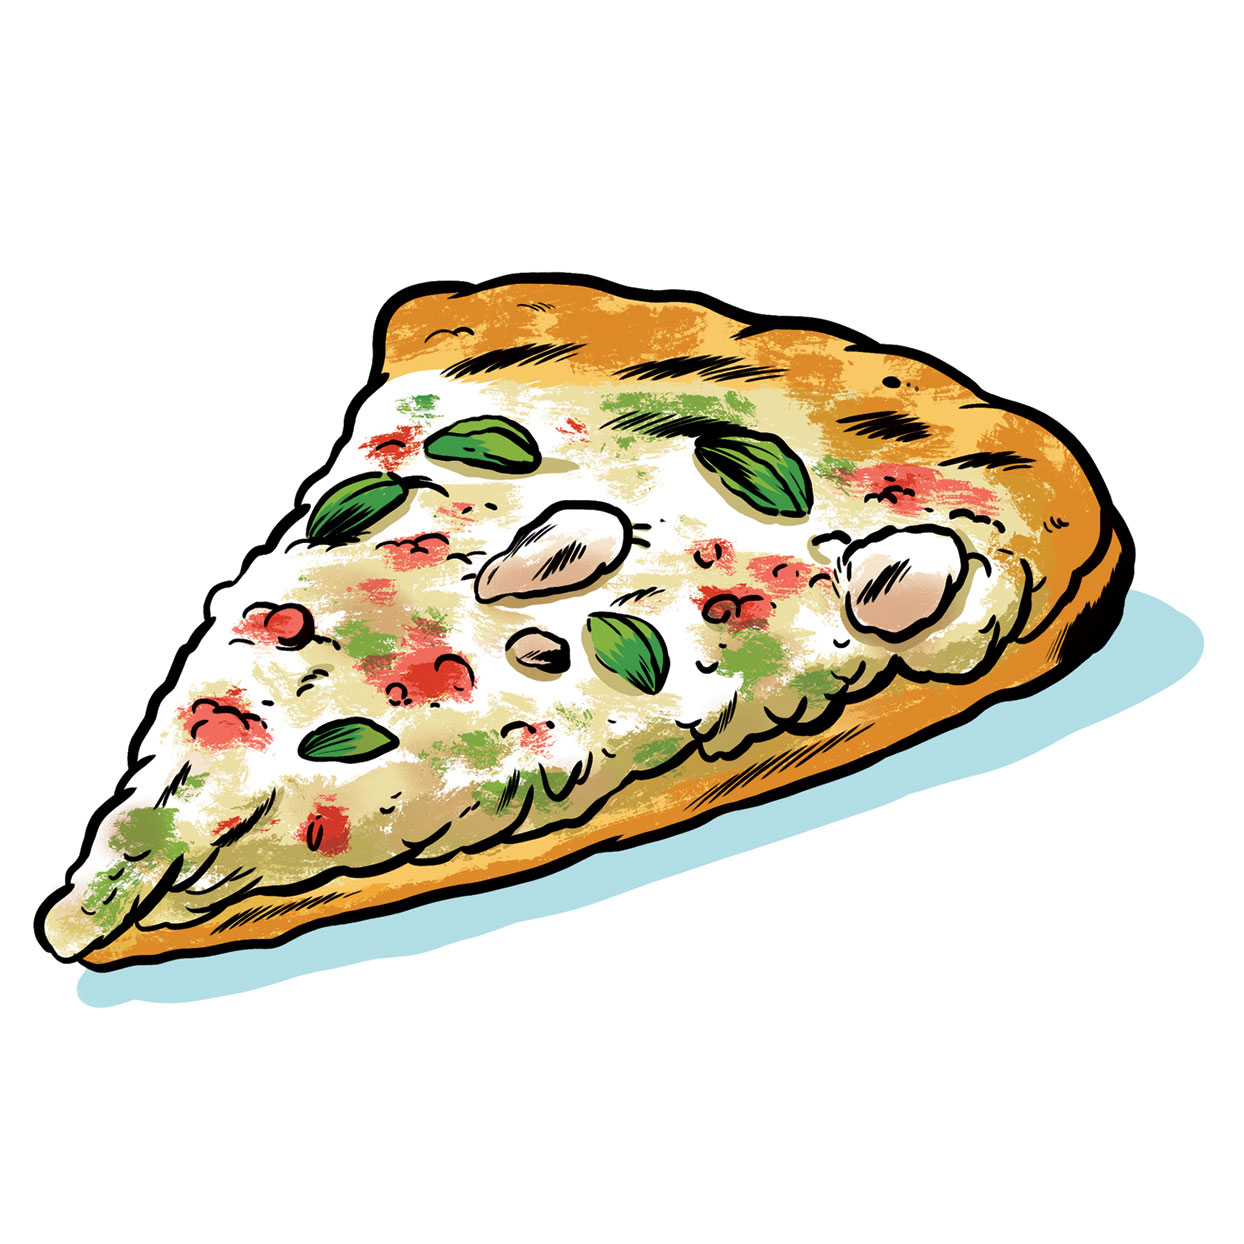 Turkey, Cranberry & Brussels Sprout Pizza illustration